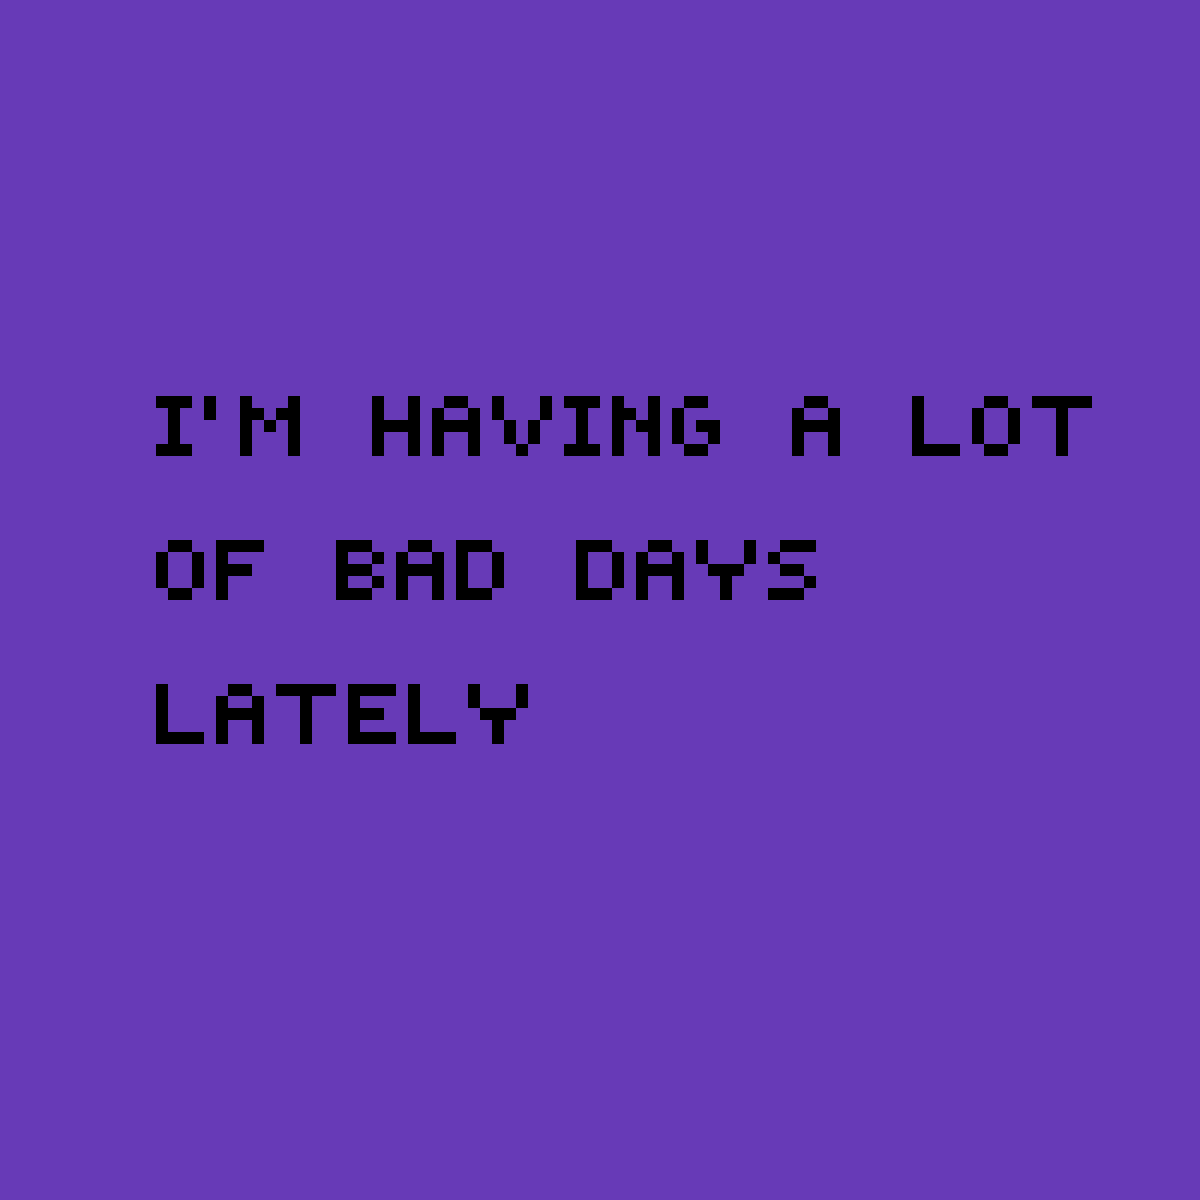 Bad day  by Lilacpuppy